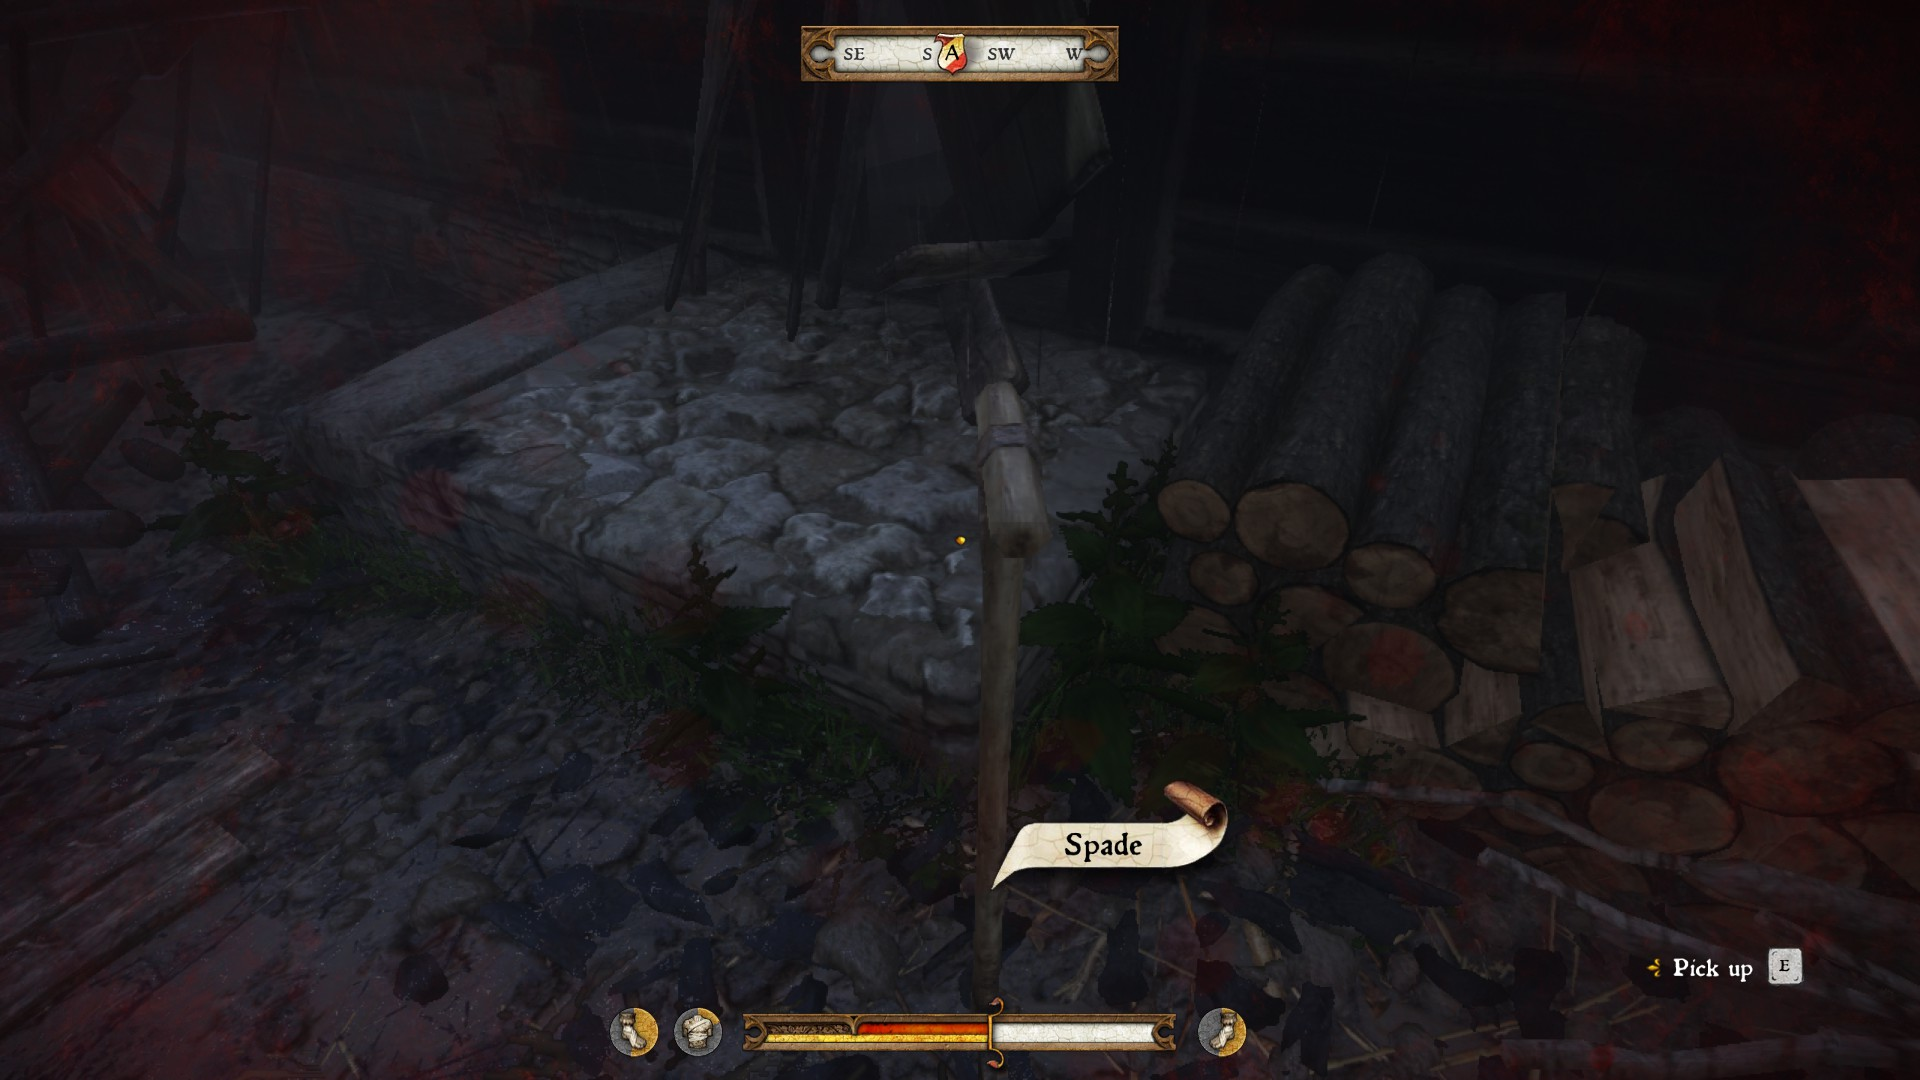 Kingdom Come Deliverance Homecoming Quest Guide - How to Find the